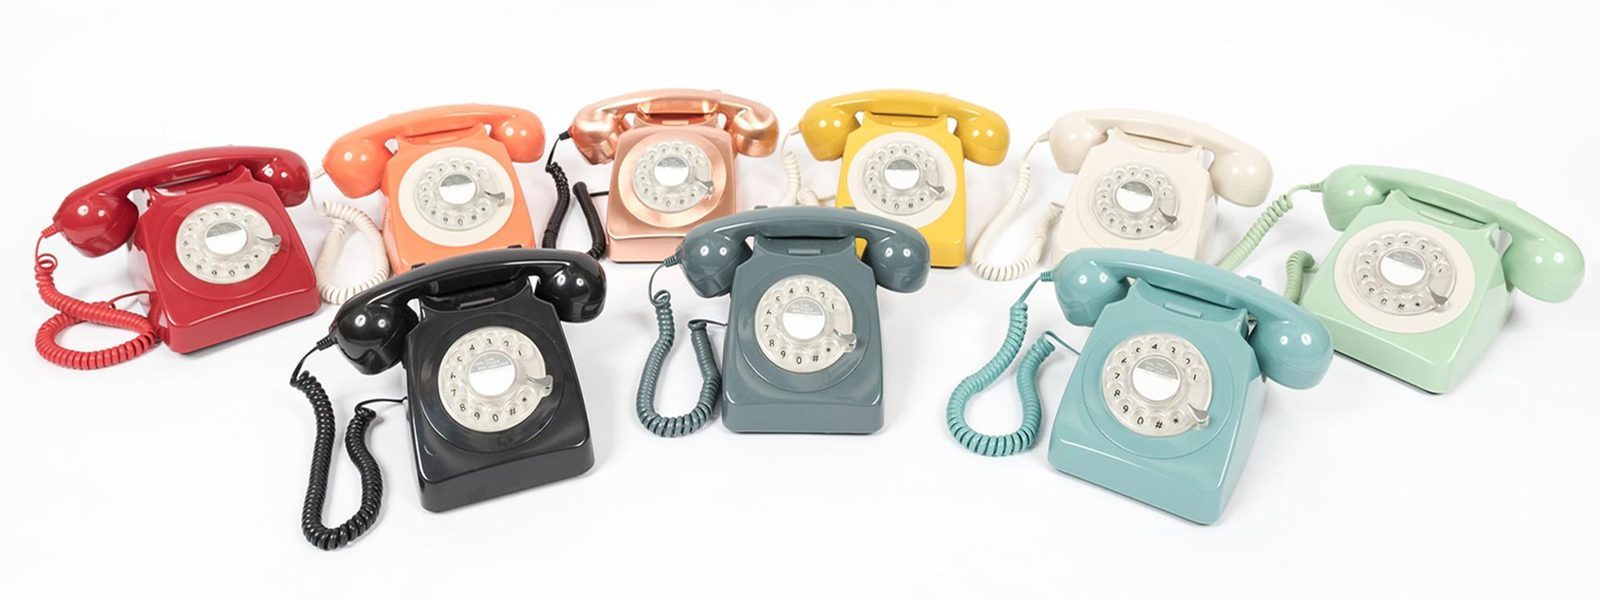 Colourful-Vintage-Phones-from-GPO-Retro